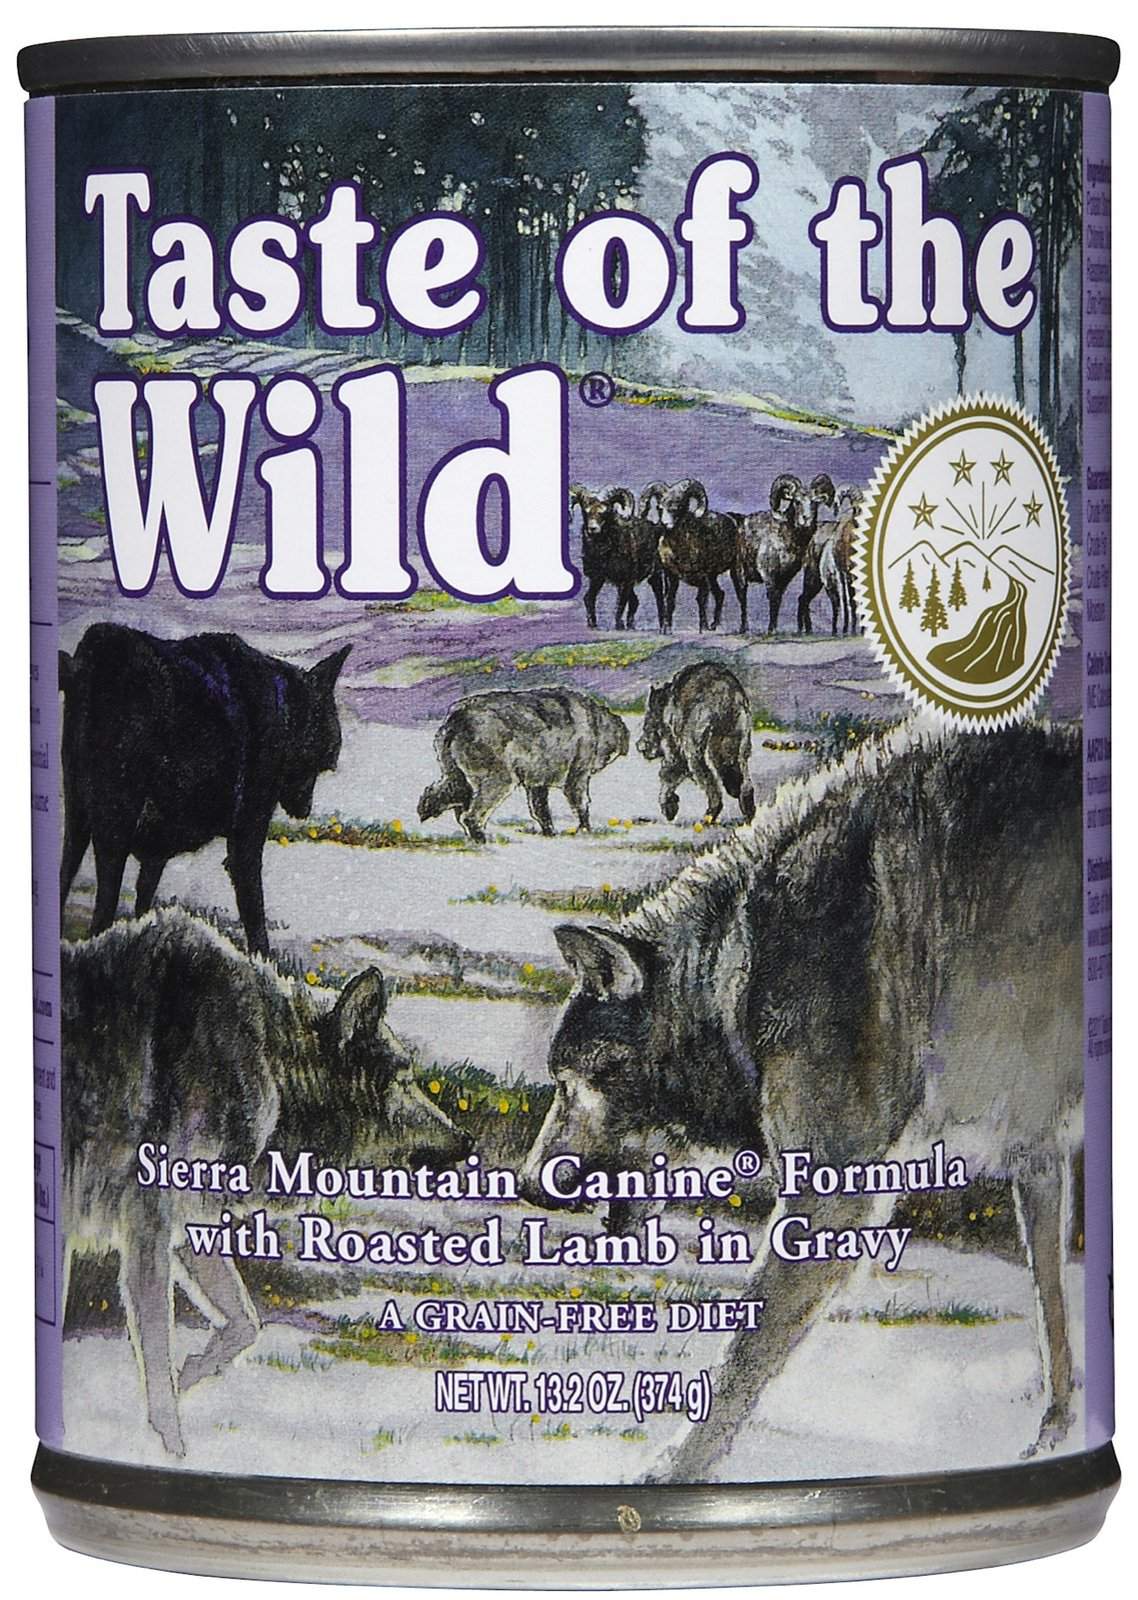 Taste of the Wild Canned Sierra Mountain Canine Formula Dog Food